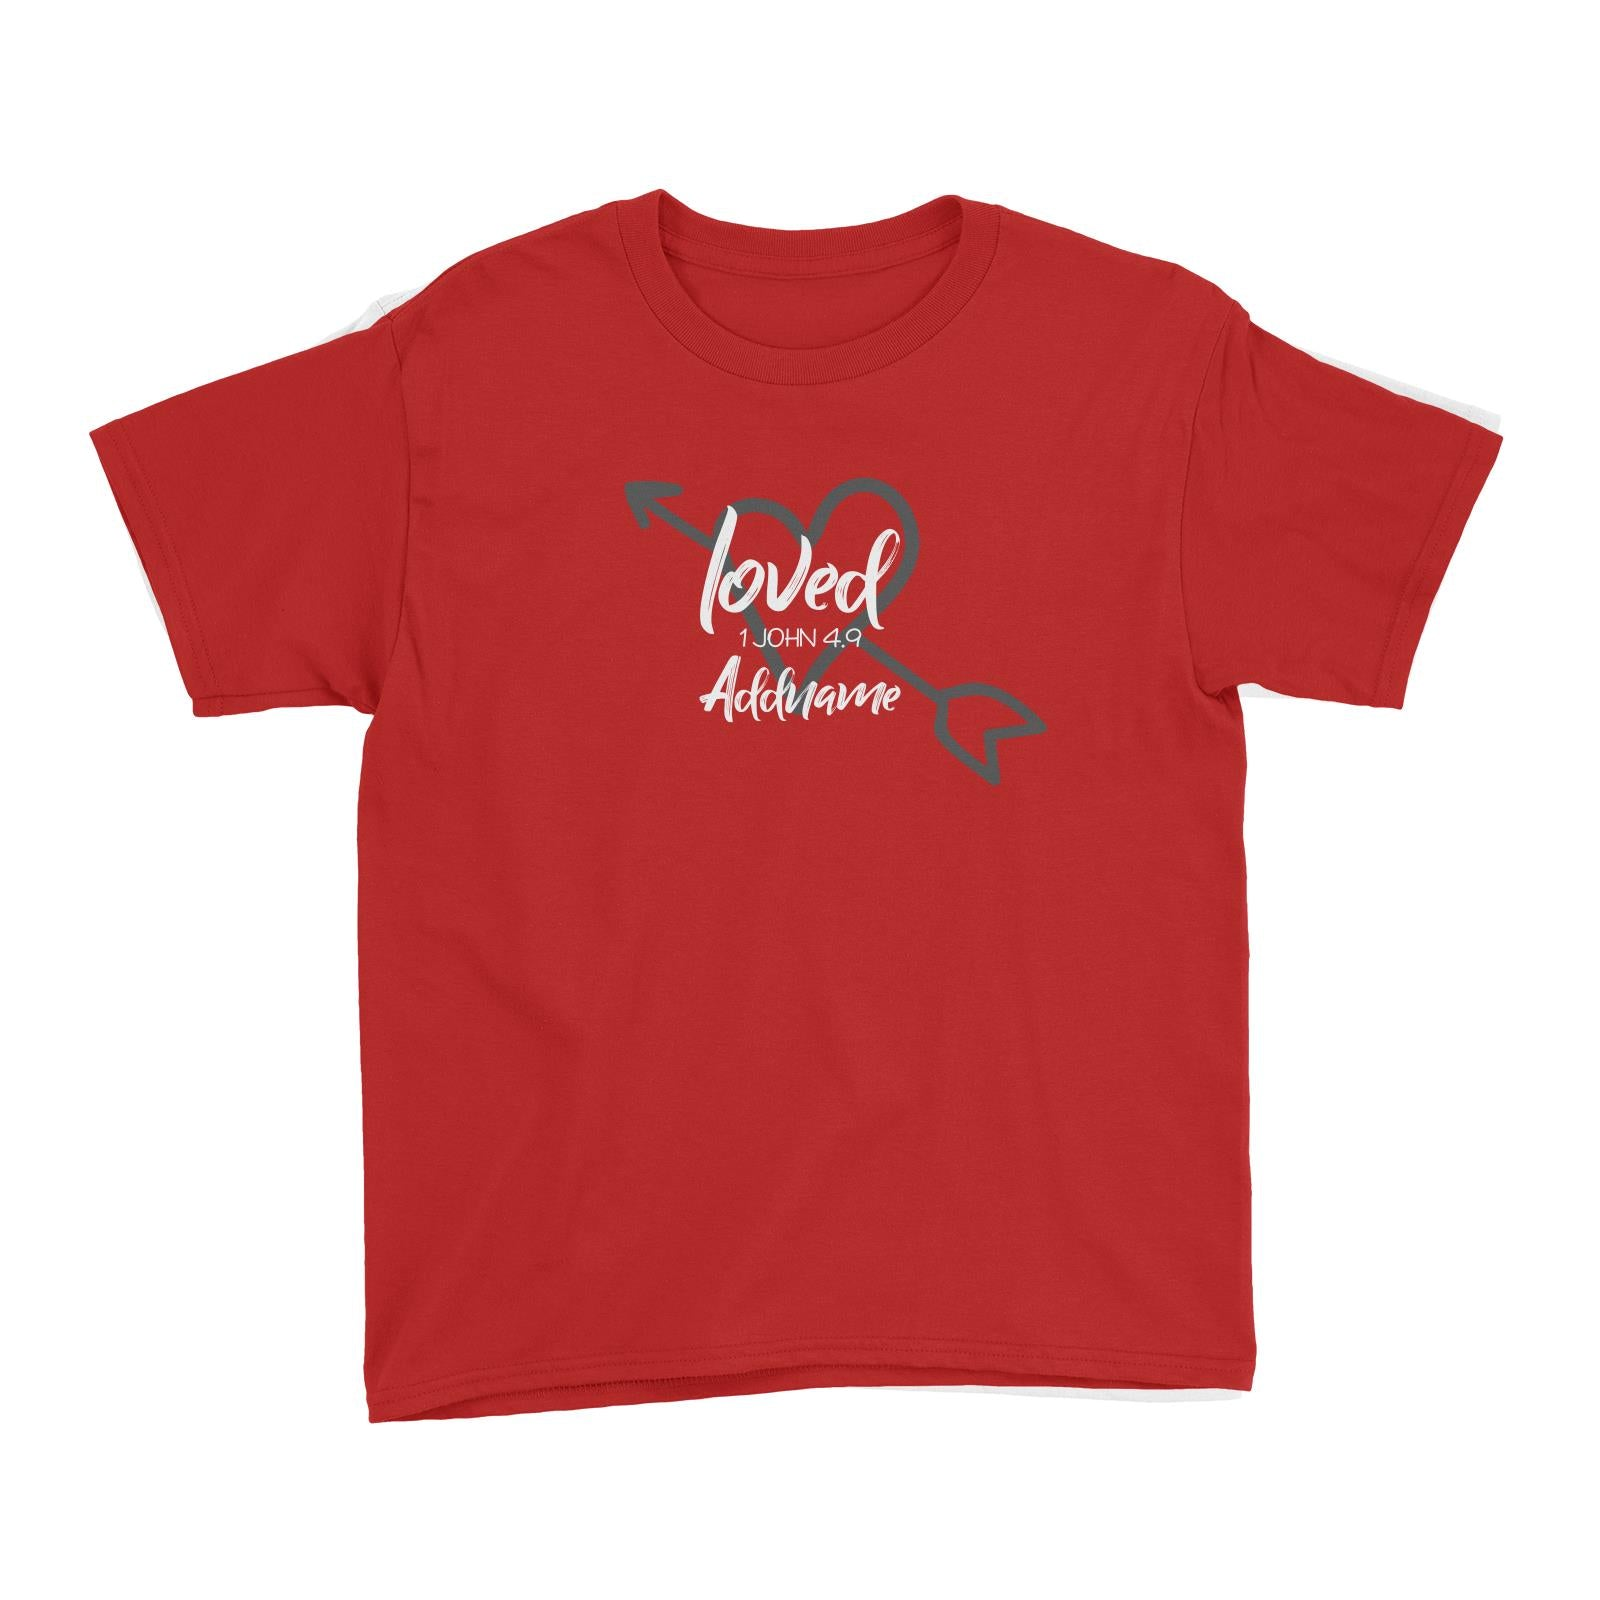 Loved Family Loved With Heart And Arrow 1 John 4.9 Addname Kid's T-Shirt